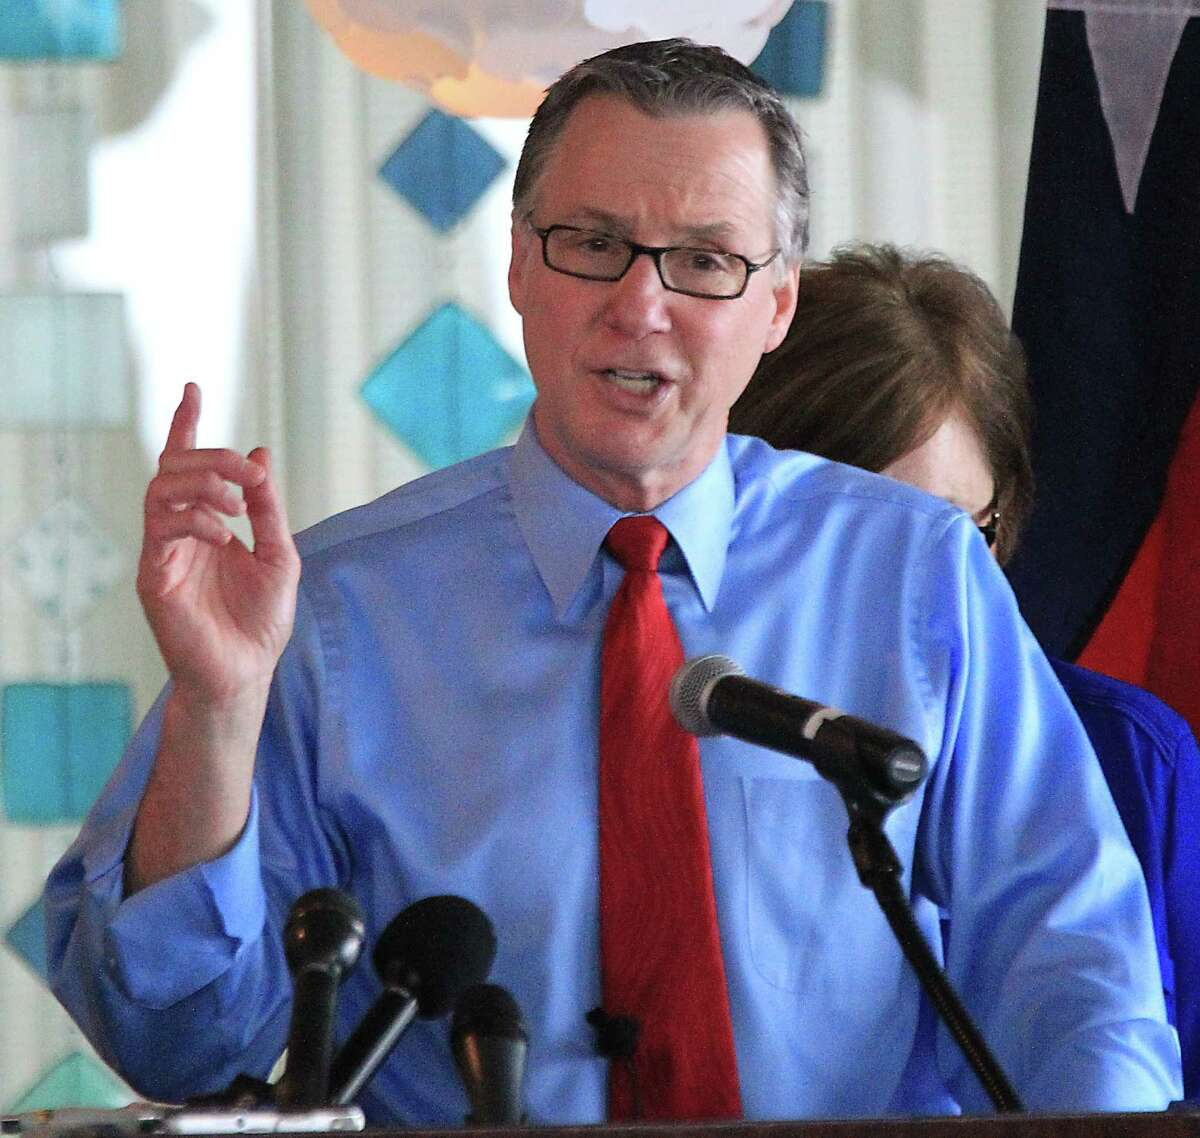 Houston City Councilman Stephen Costello speaks during a press conference formally announcing his mayoral campaign at the Hilton Americas Houston Hotel Monday, March 9, 2015, in Houston.